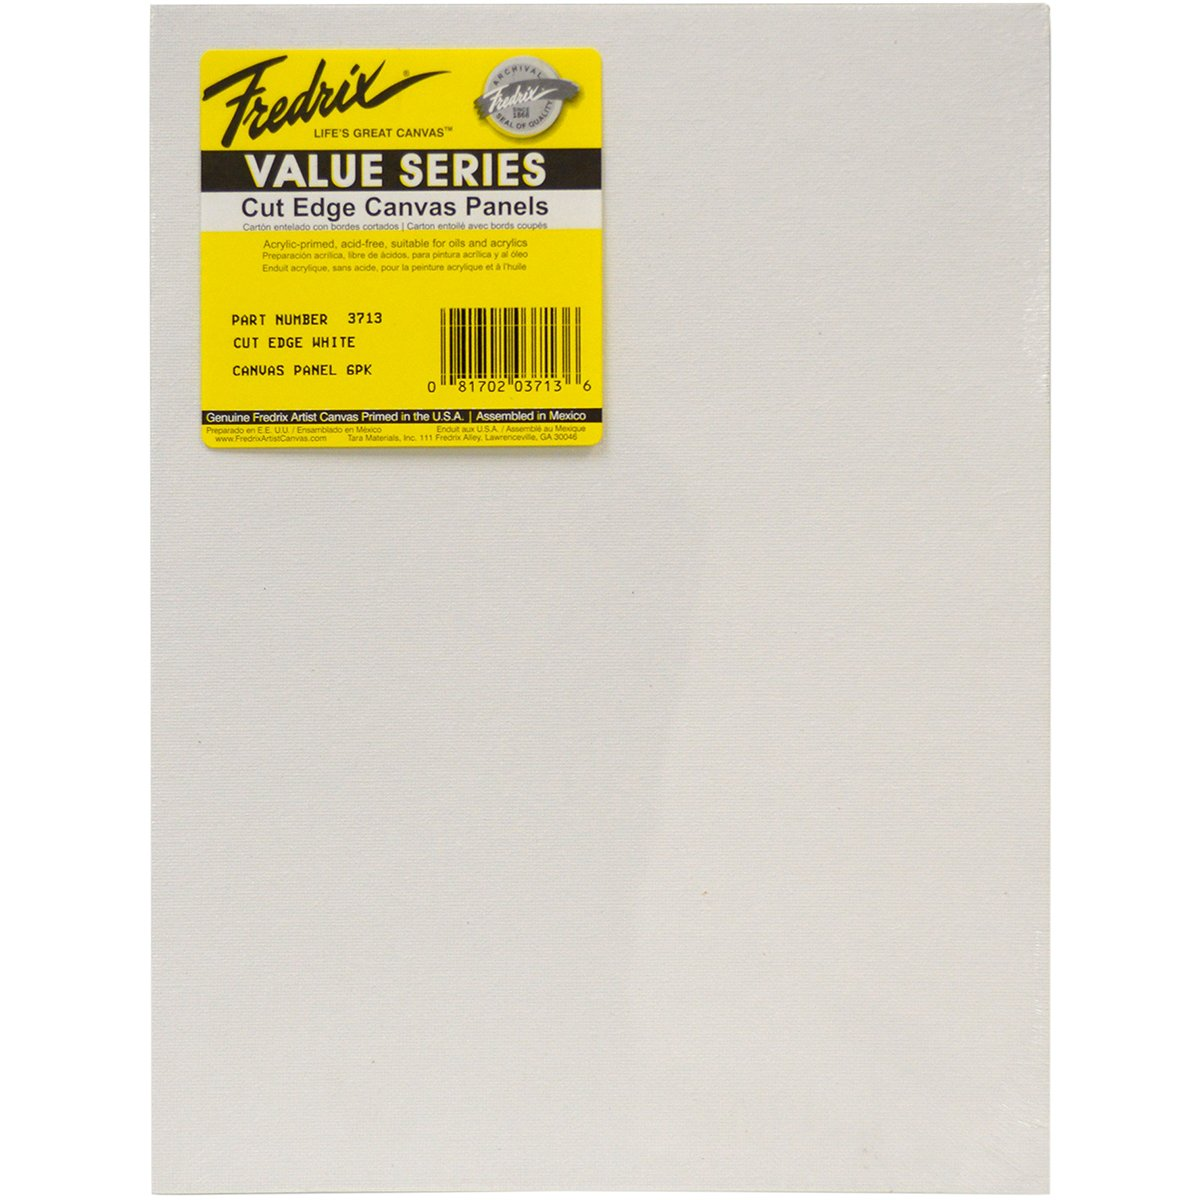 11 by 14, Pack of 6 Fredrix Art Canvas Tara Cut Edge Canvas Panel